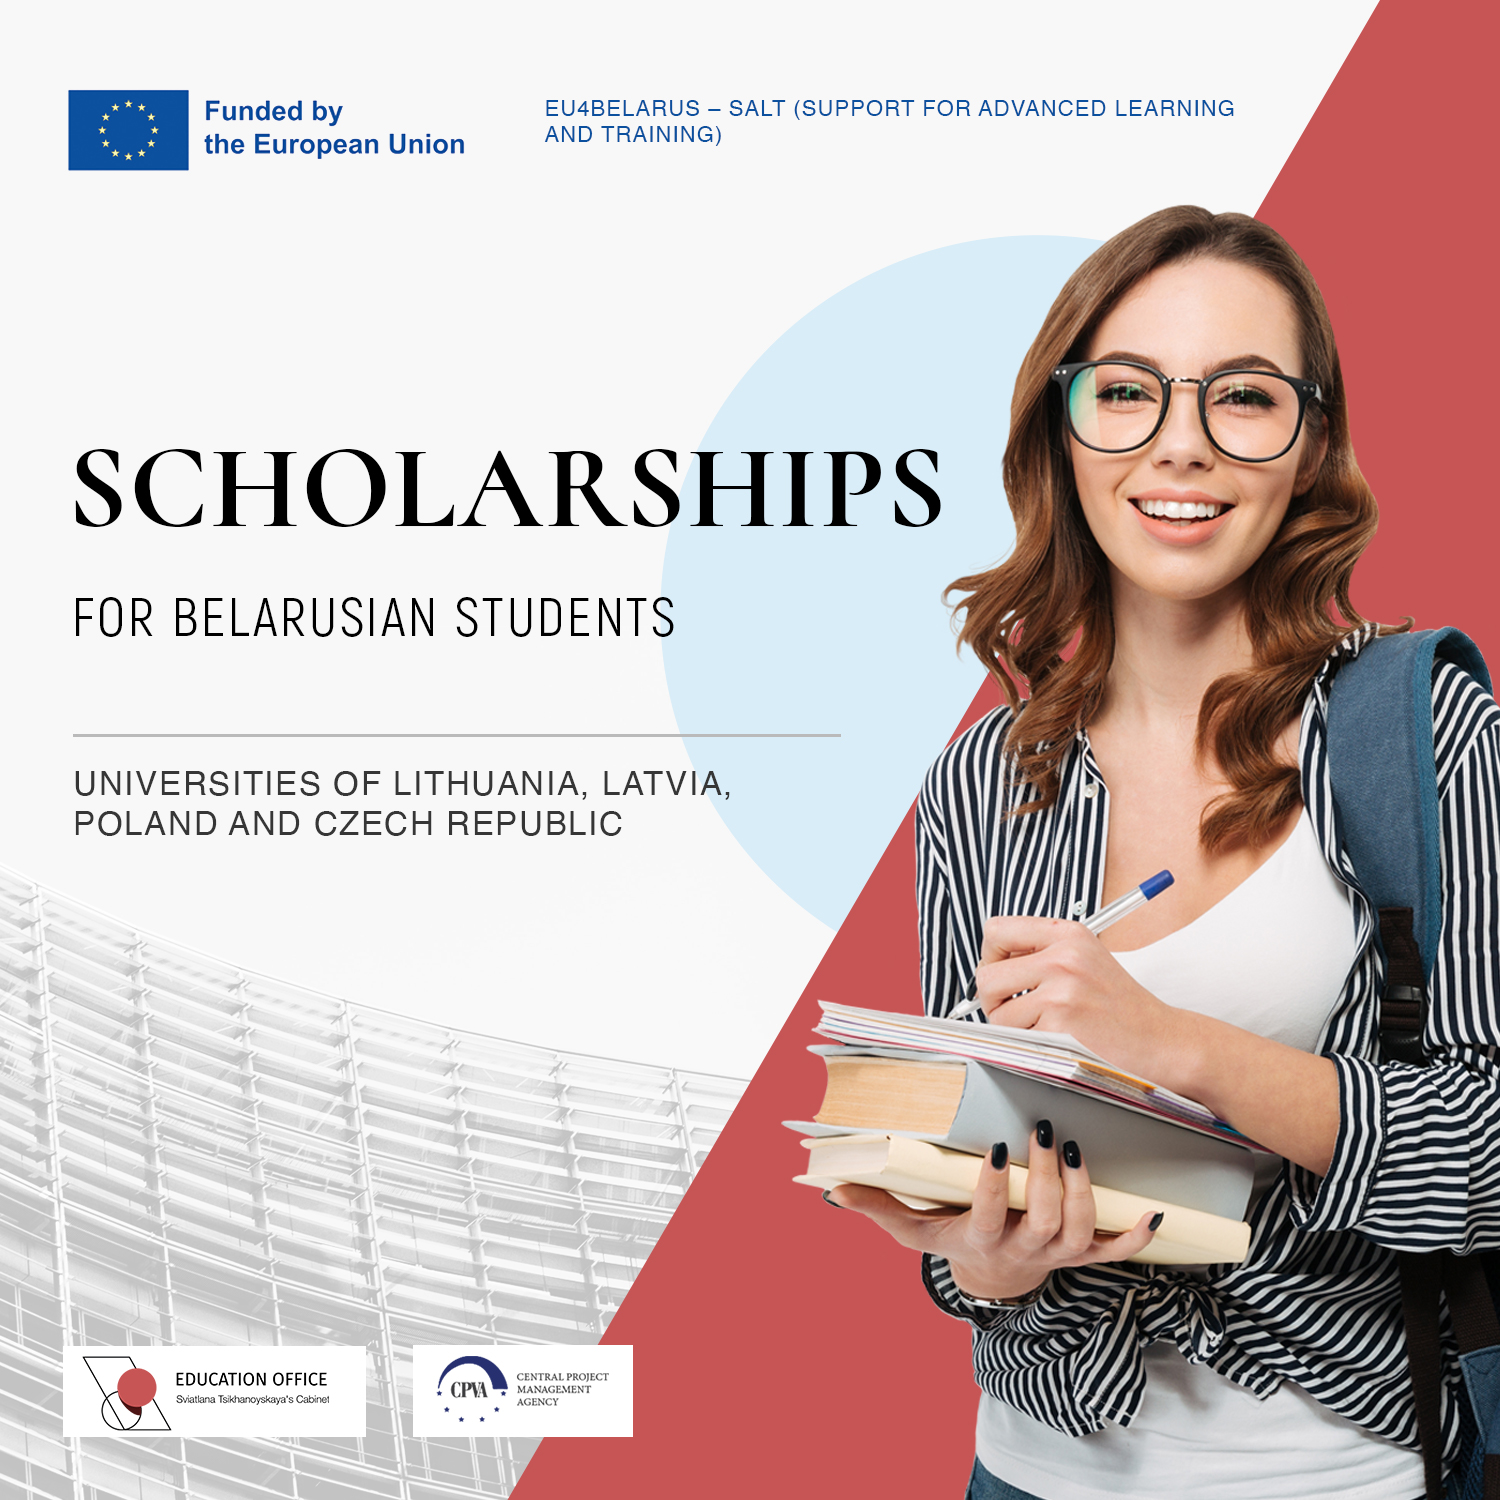 Scholarships for Belarusian students